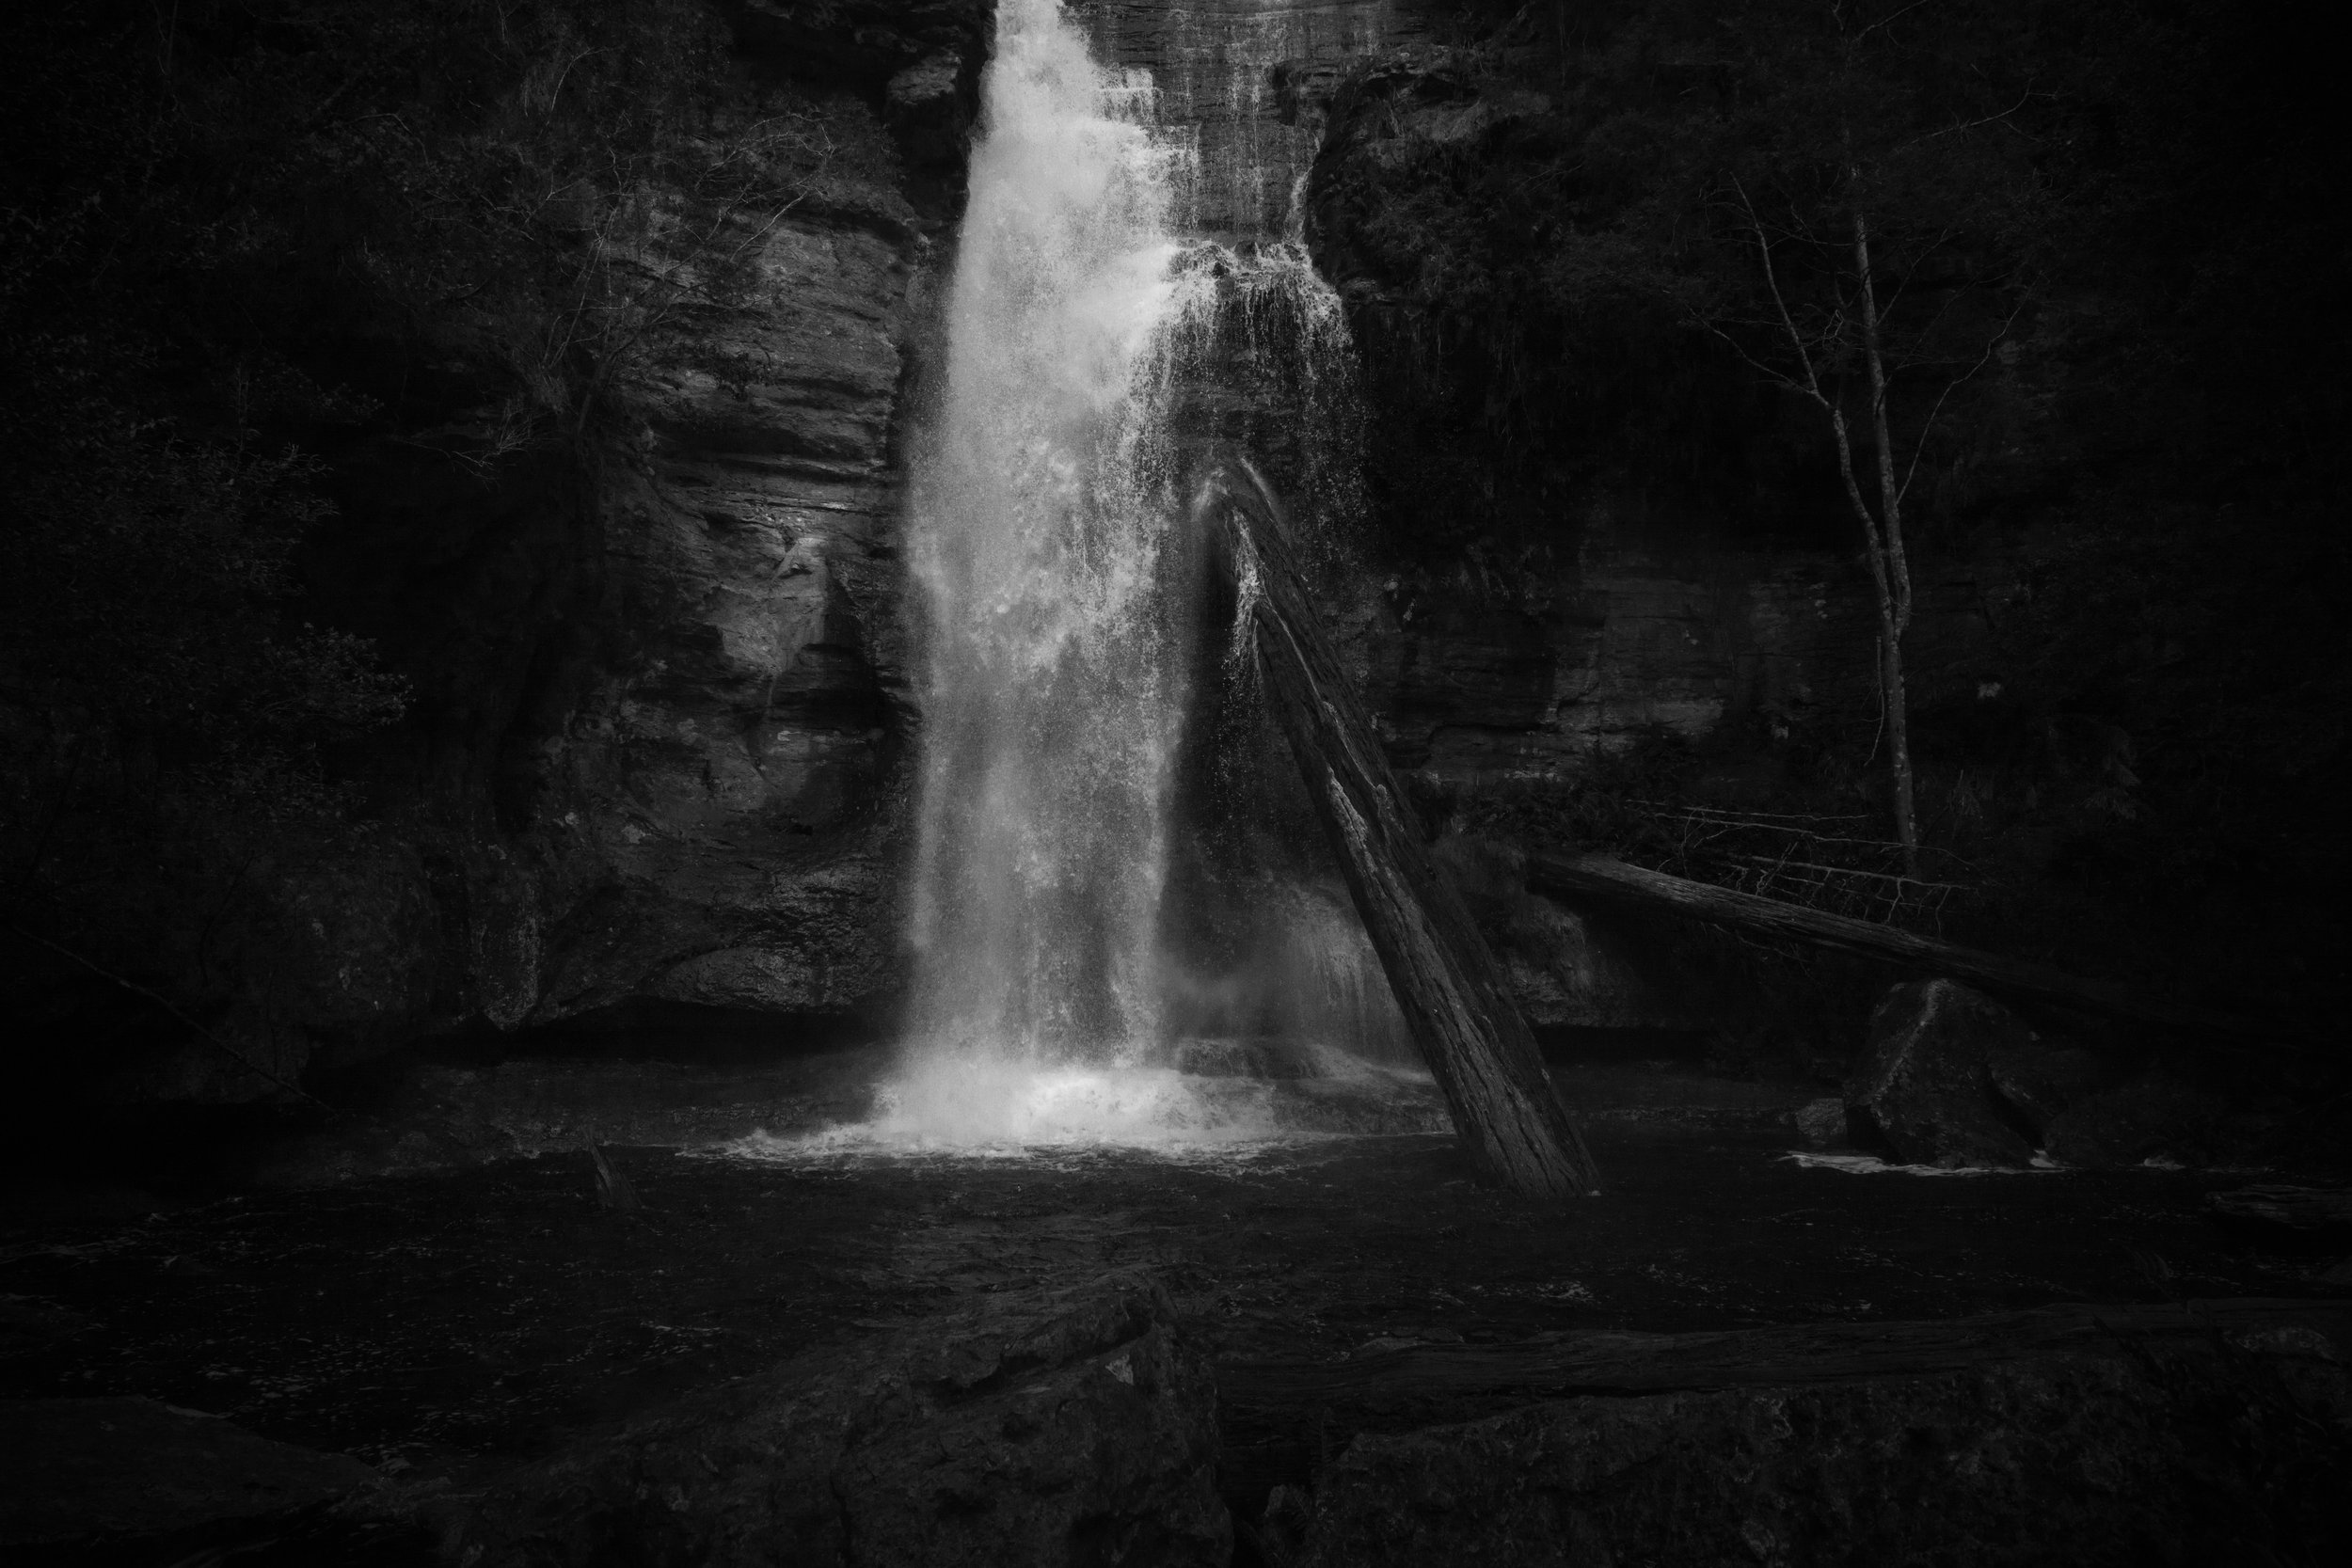 Close up of Snug Falls in monochrome